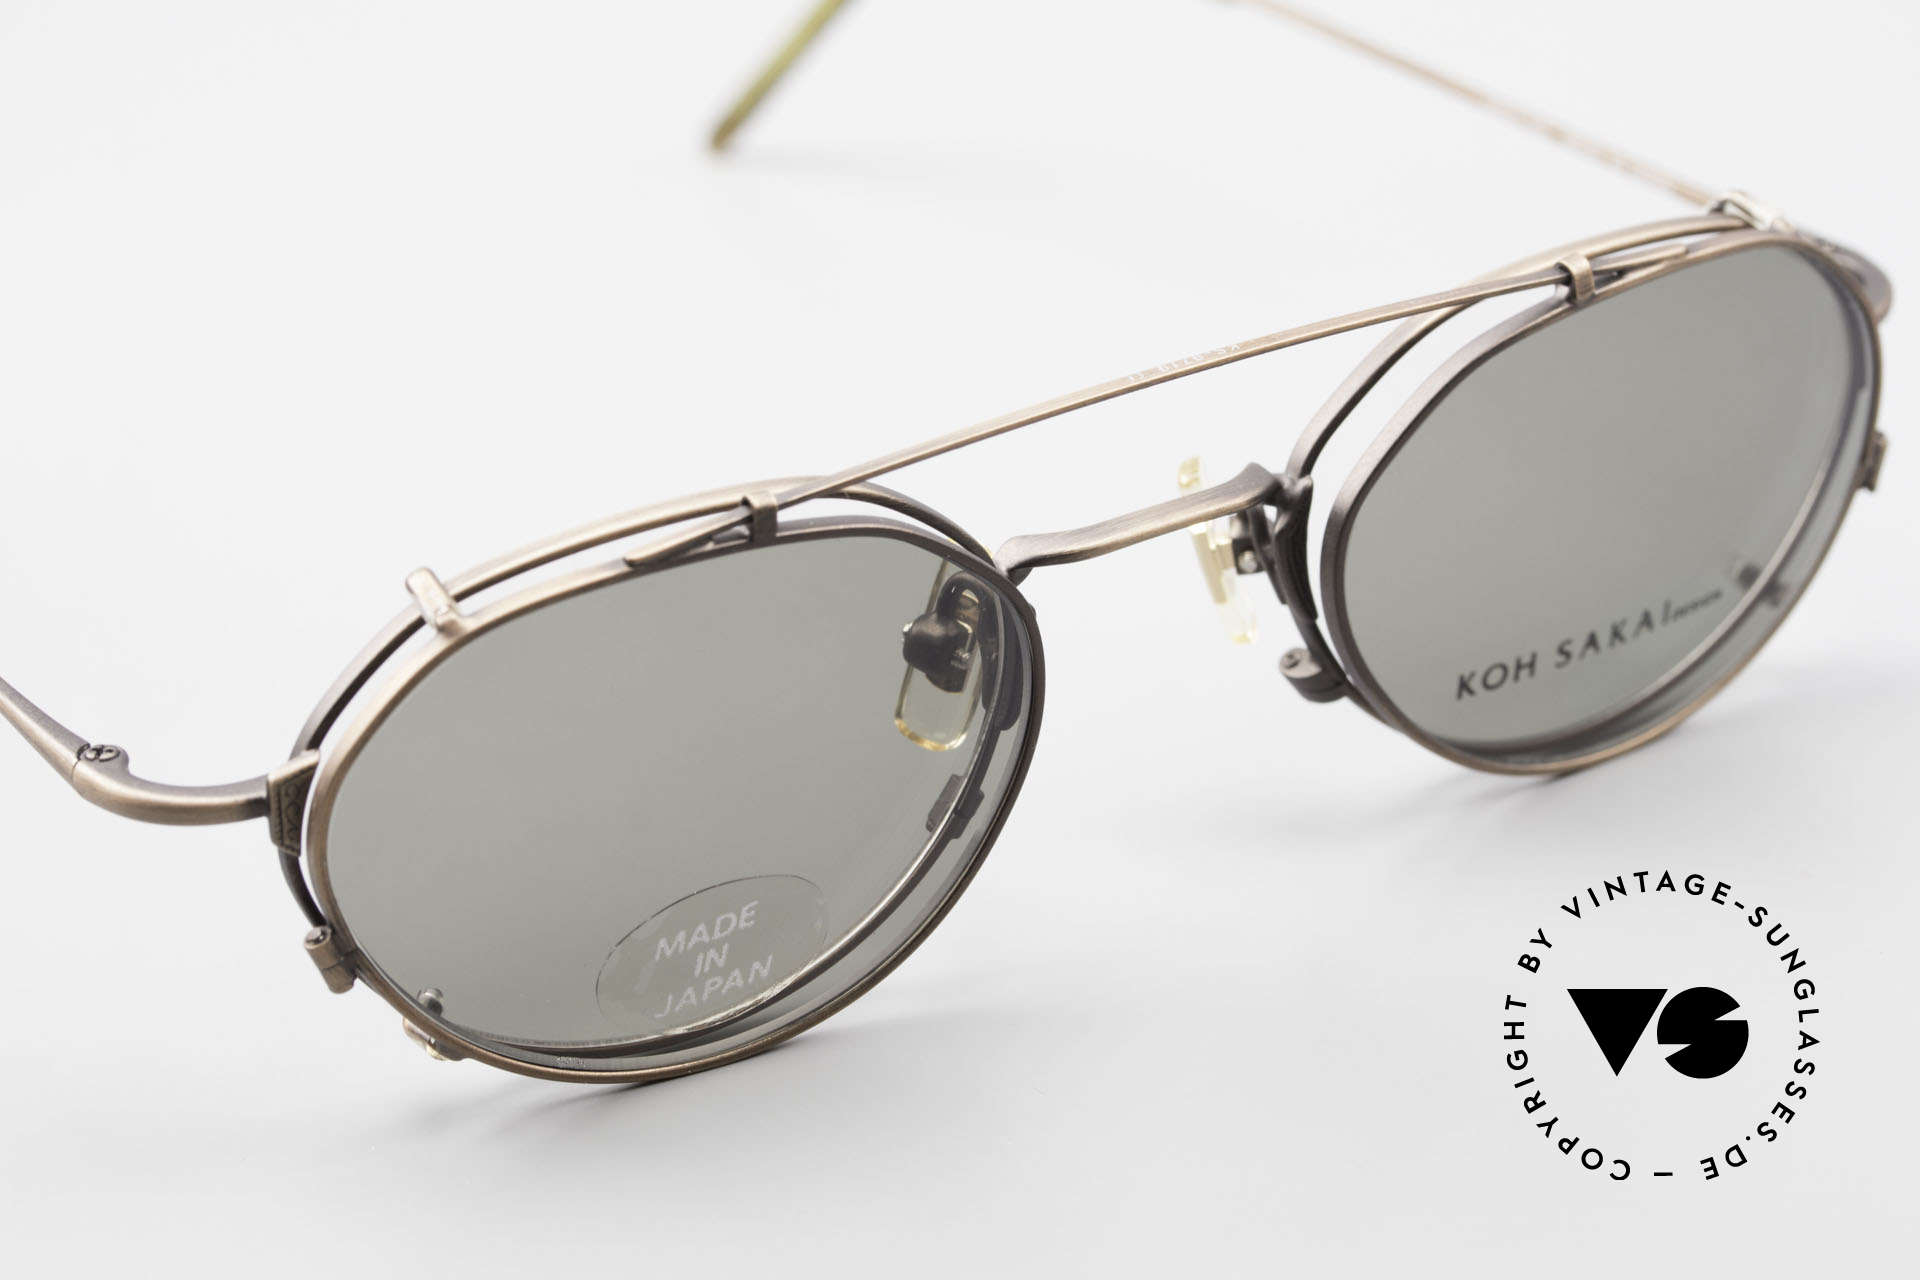 """Koh Sakai KS9719 Vintage Frame Ladies & Gents, very interesting alloying in a kind of """"antique bronze"""", Made for Men and Women"""